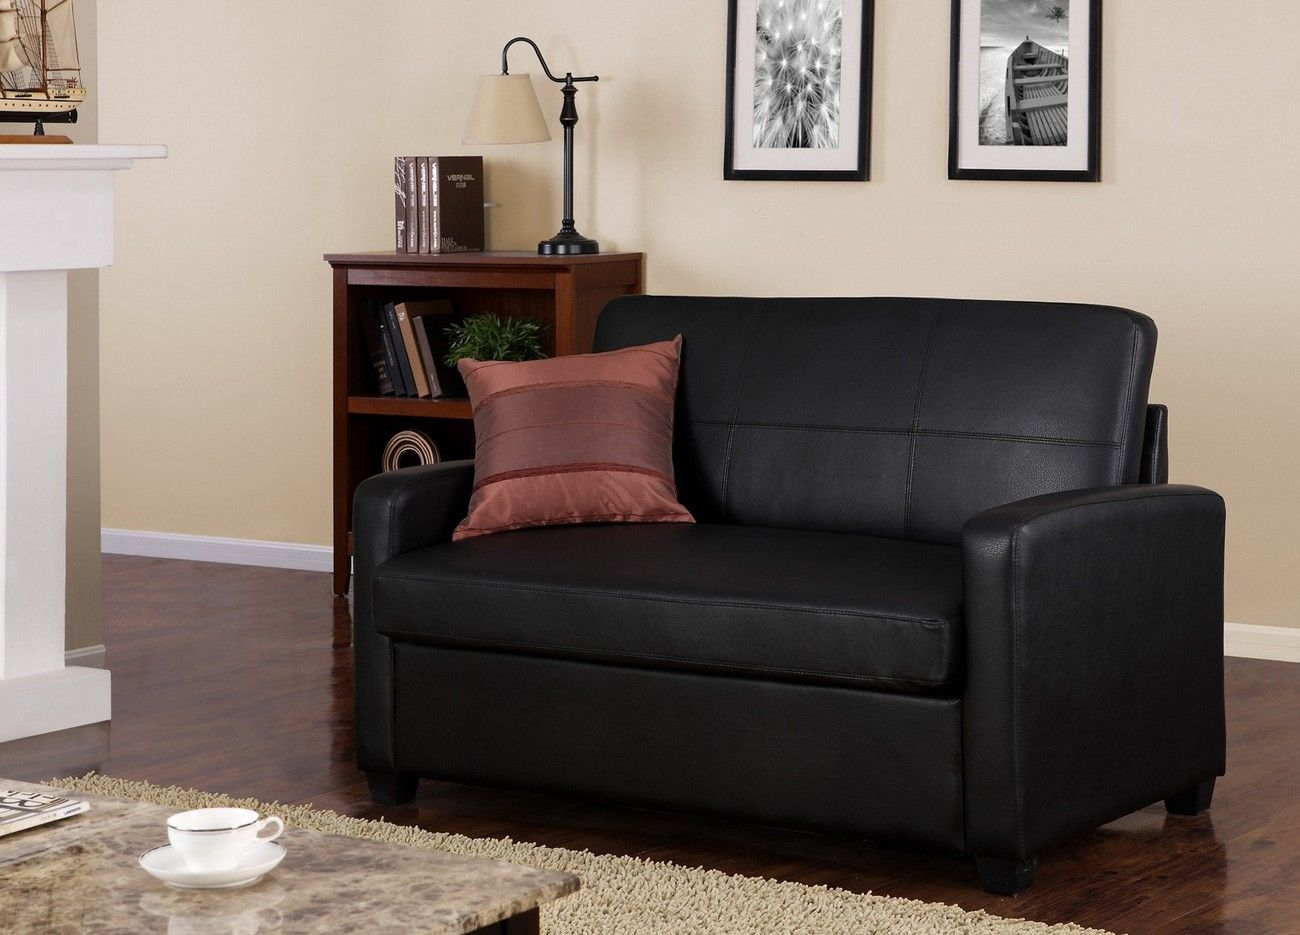 Black Faux Leather Sleeper Sofa Http Tmidb Com Pinterest